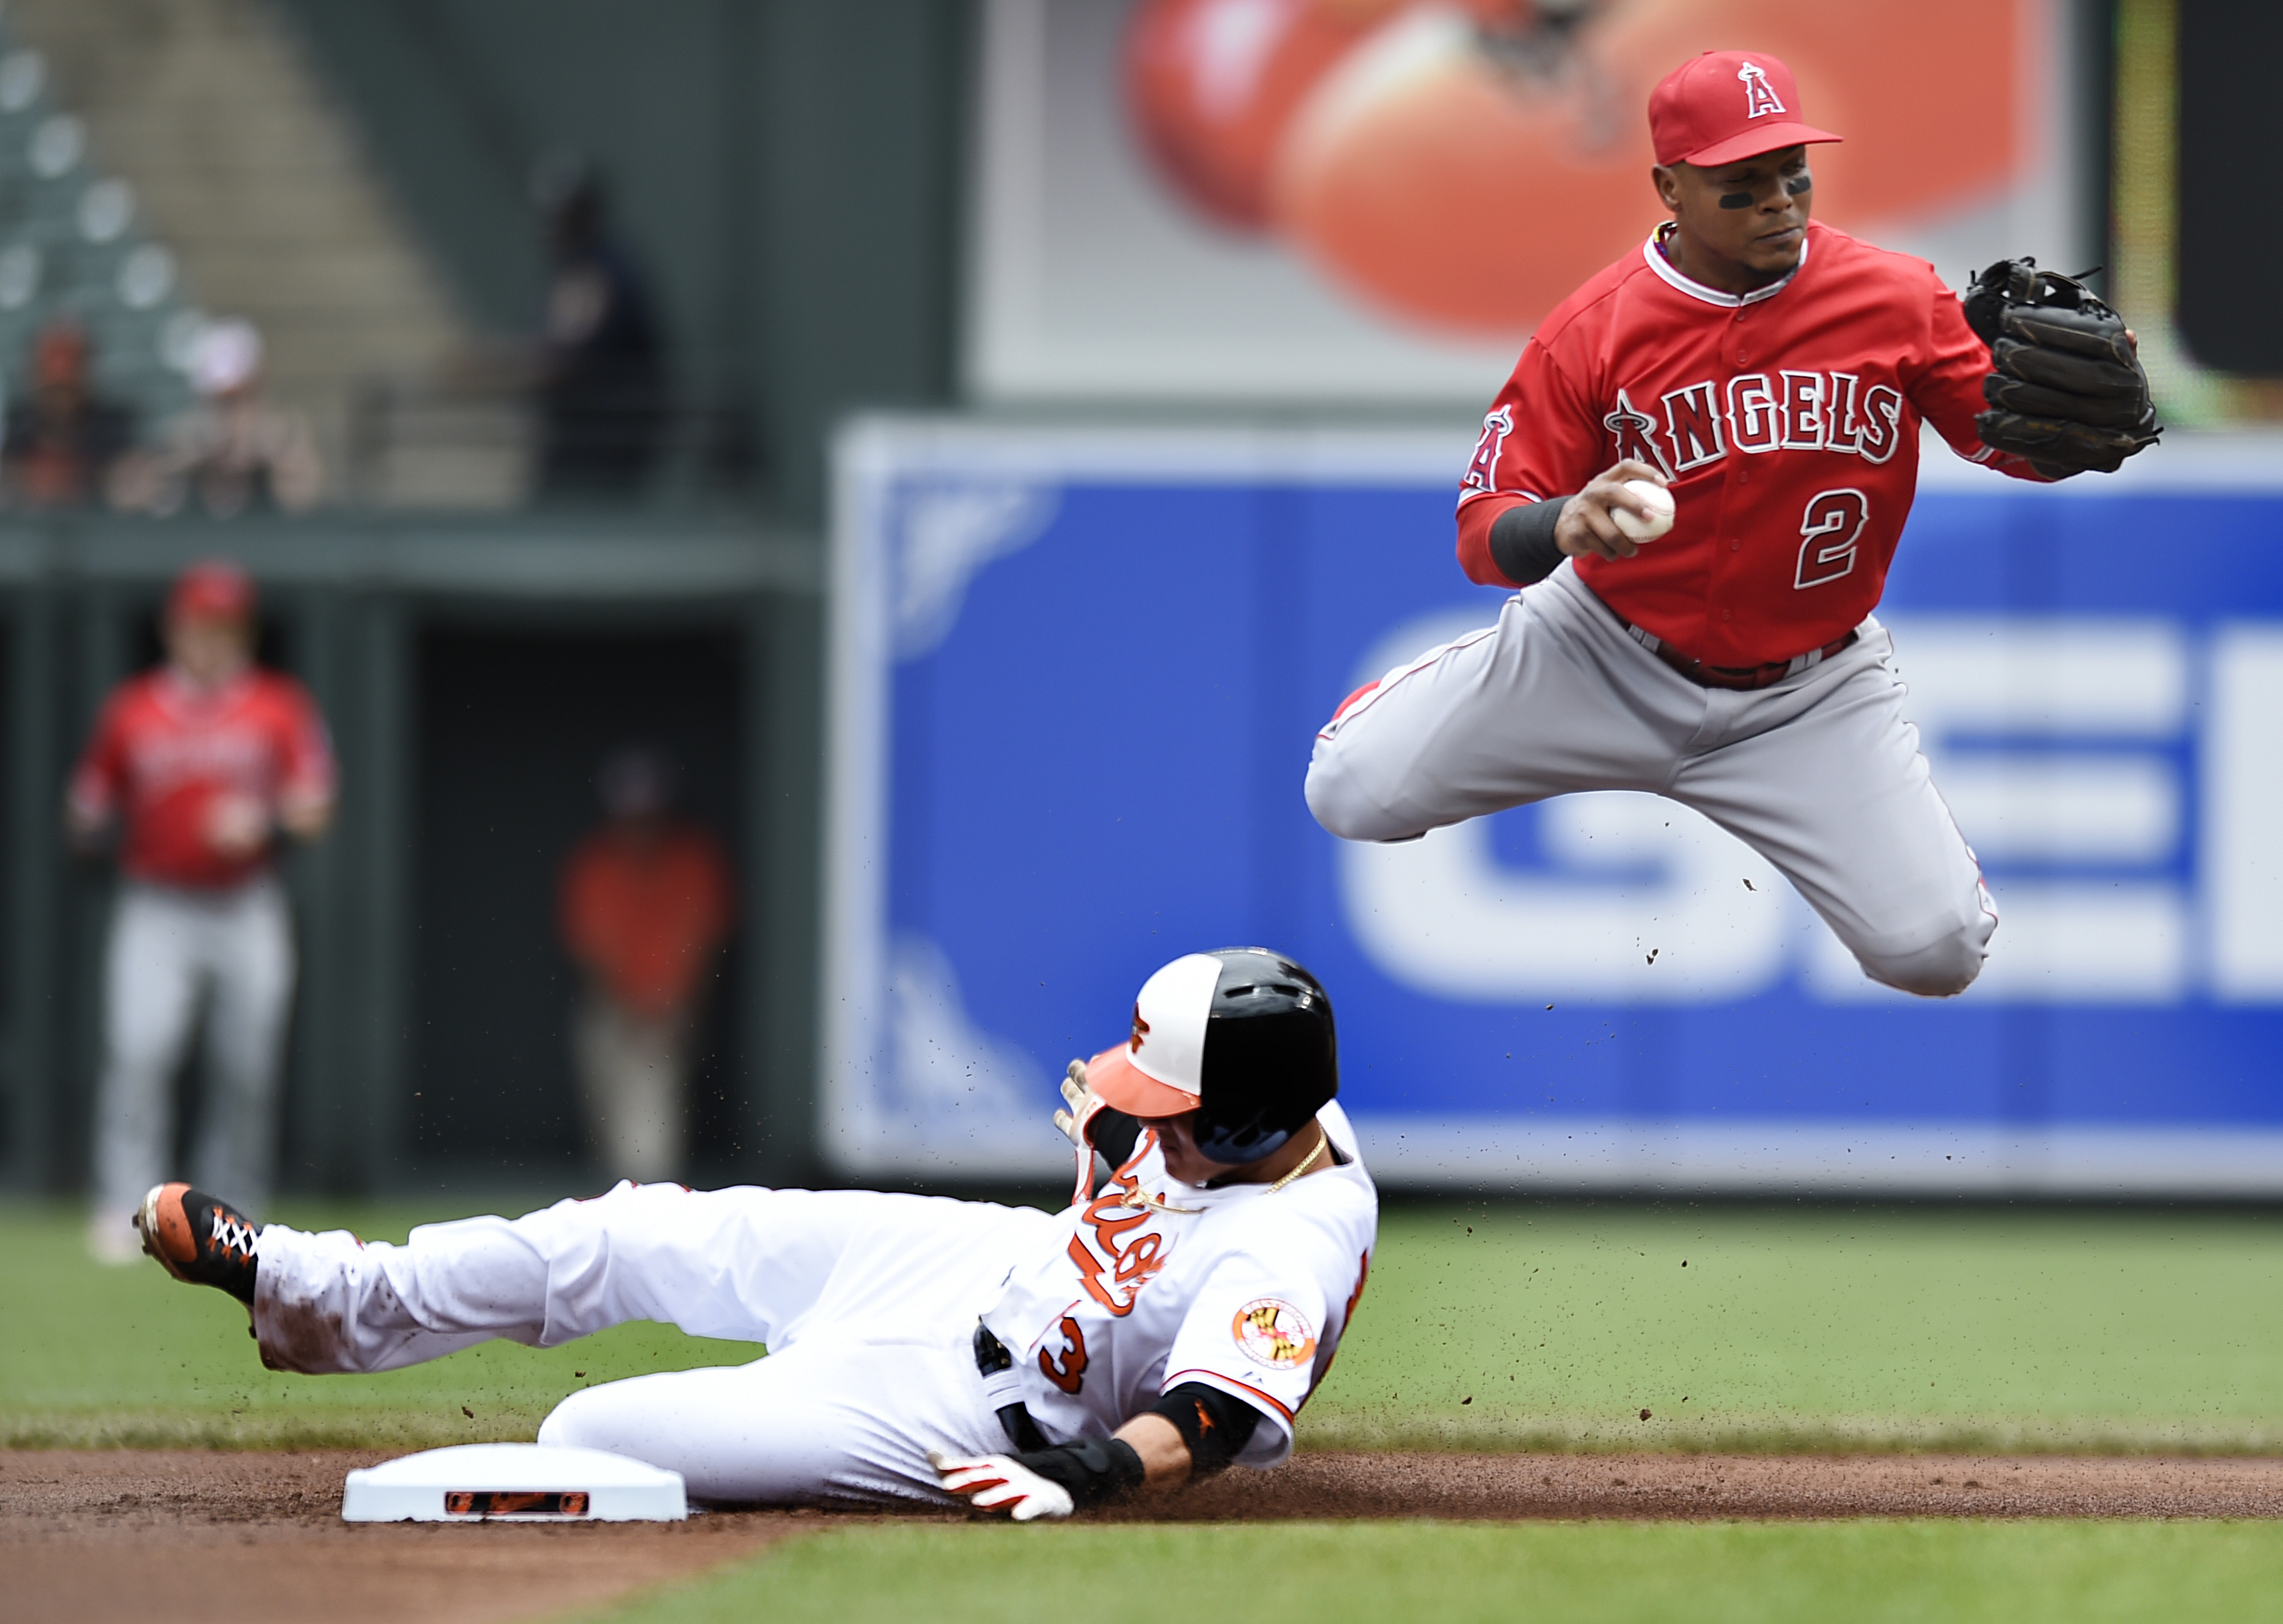 Baltimore Orioles' Manny Machado, bottom, is out at second on a force as Los Angeles Angels shortstop Erick Aybar jumps over him in the first inning of a baseball game Sunday, May 17, 2015, in Baltimore. (AP Photo/Gail Burton)